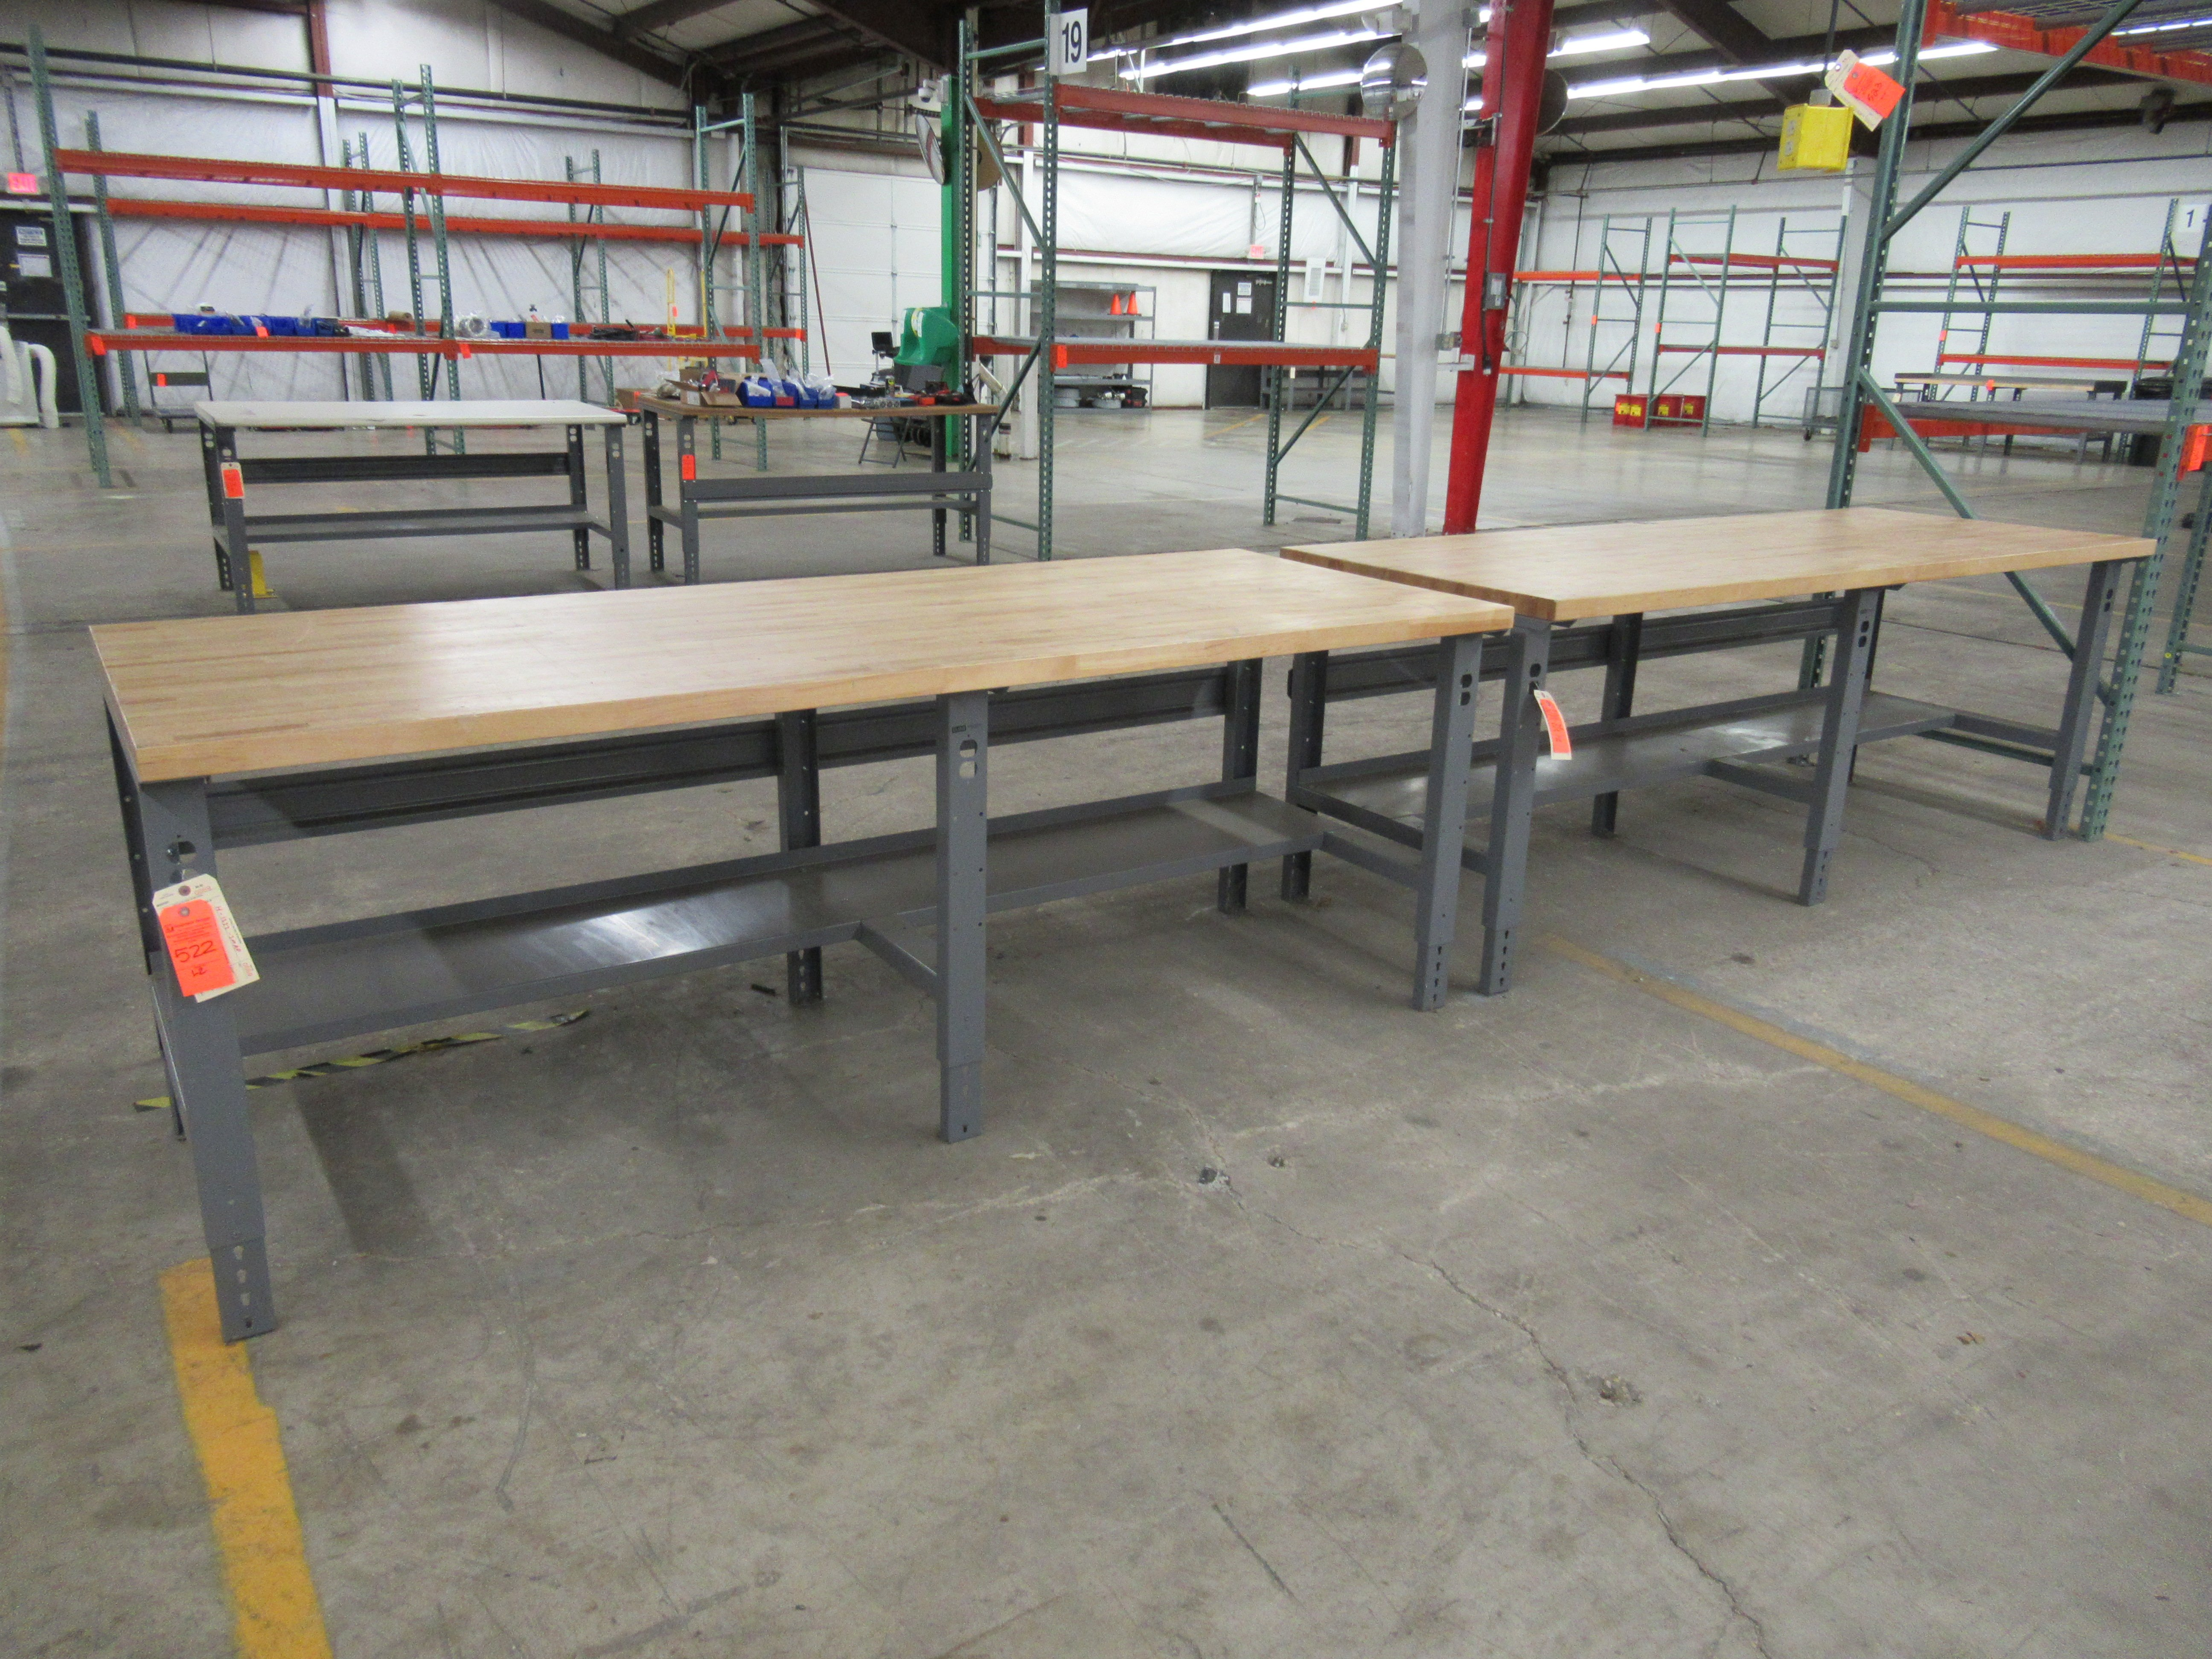 "Lot 224 - 2 Uline H-1222-MSAP Industrial Packing Tables 96"" x 36"""